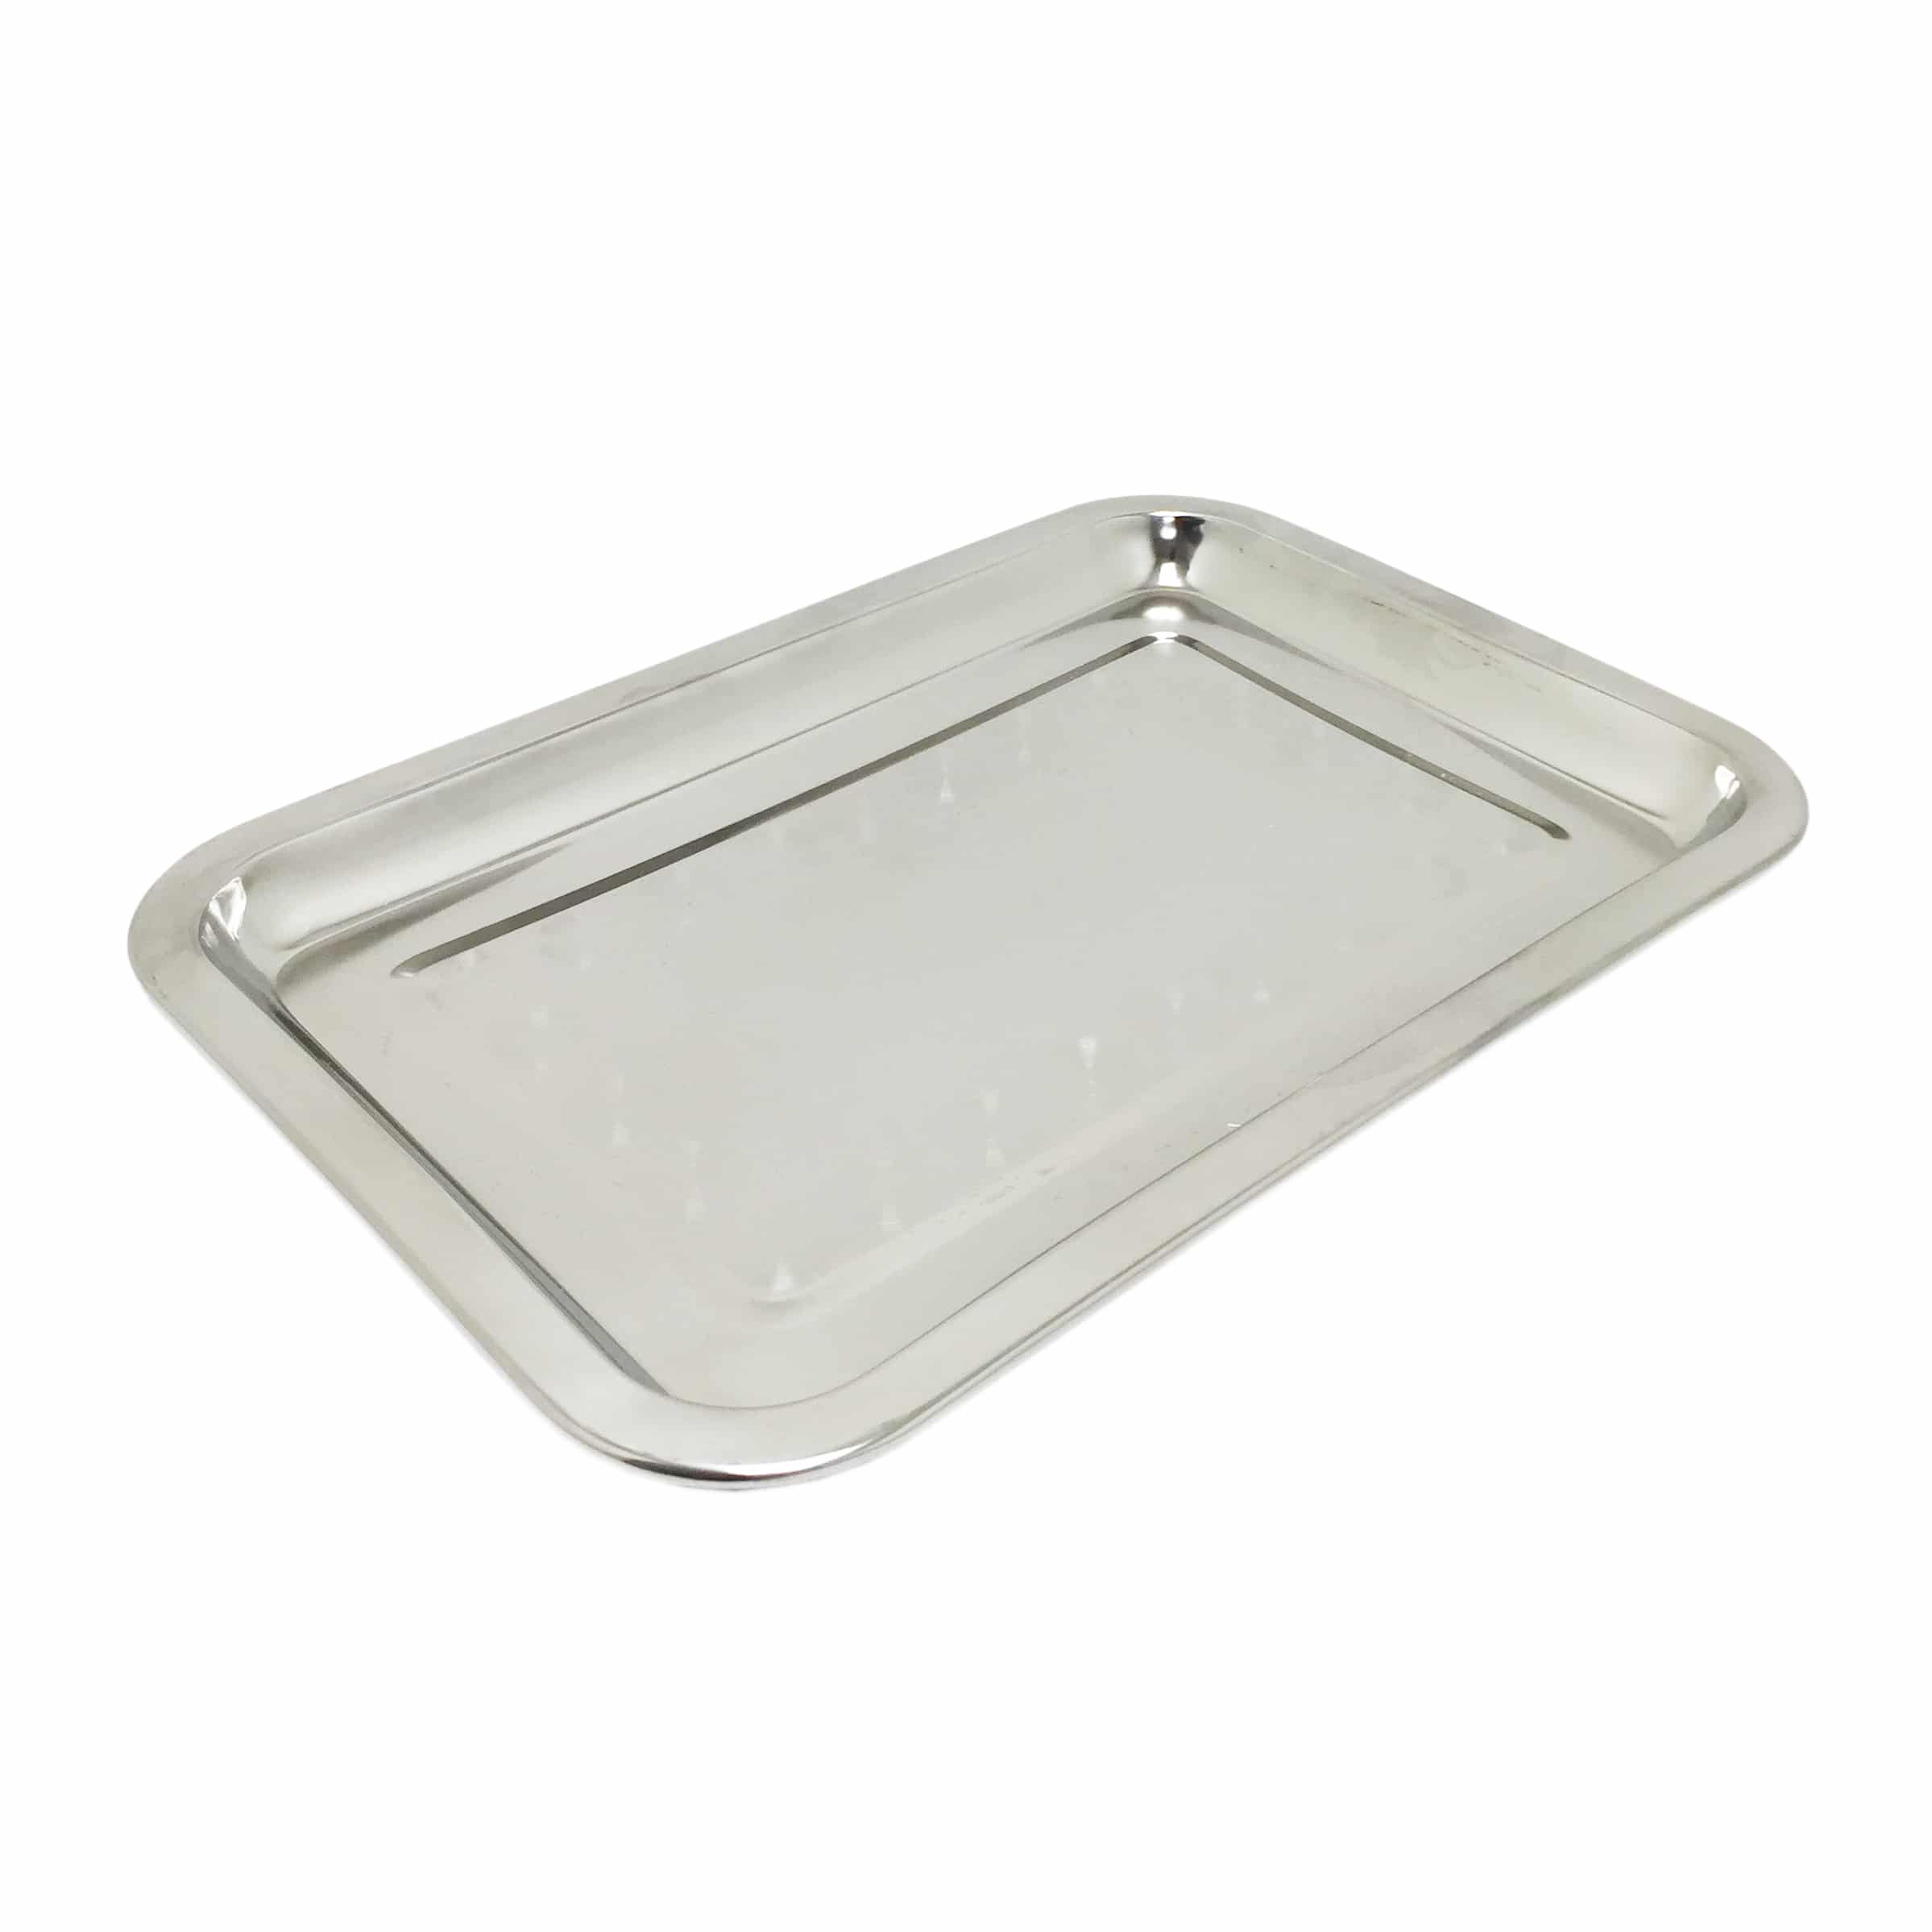 Stainless steel tattoo medical tray 12 x 8 5 for Stainless steel tattoo